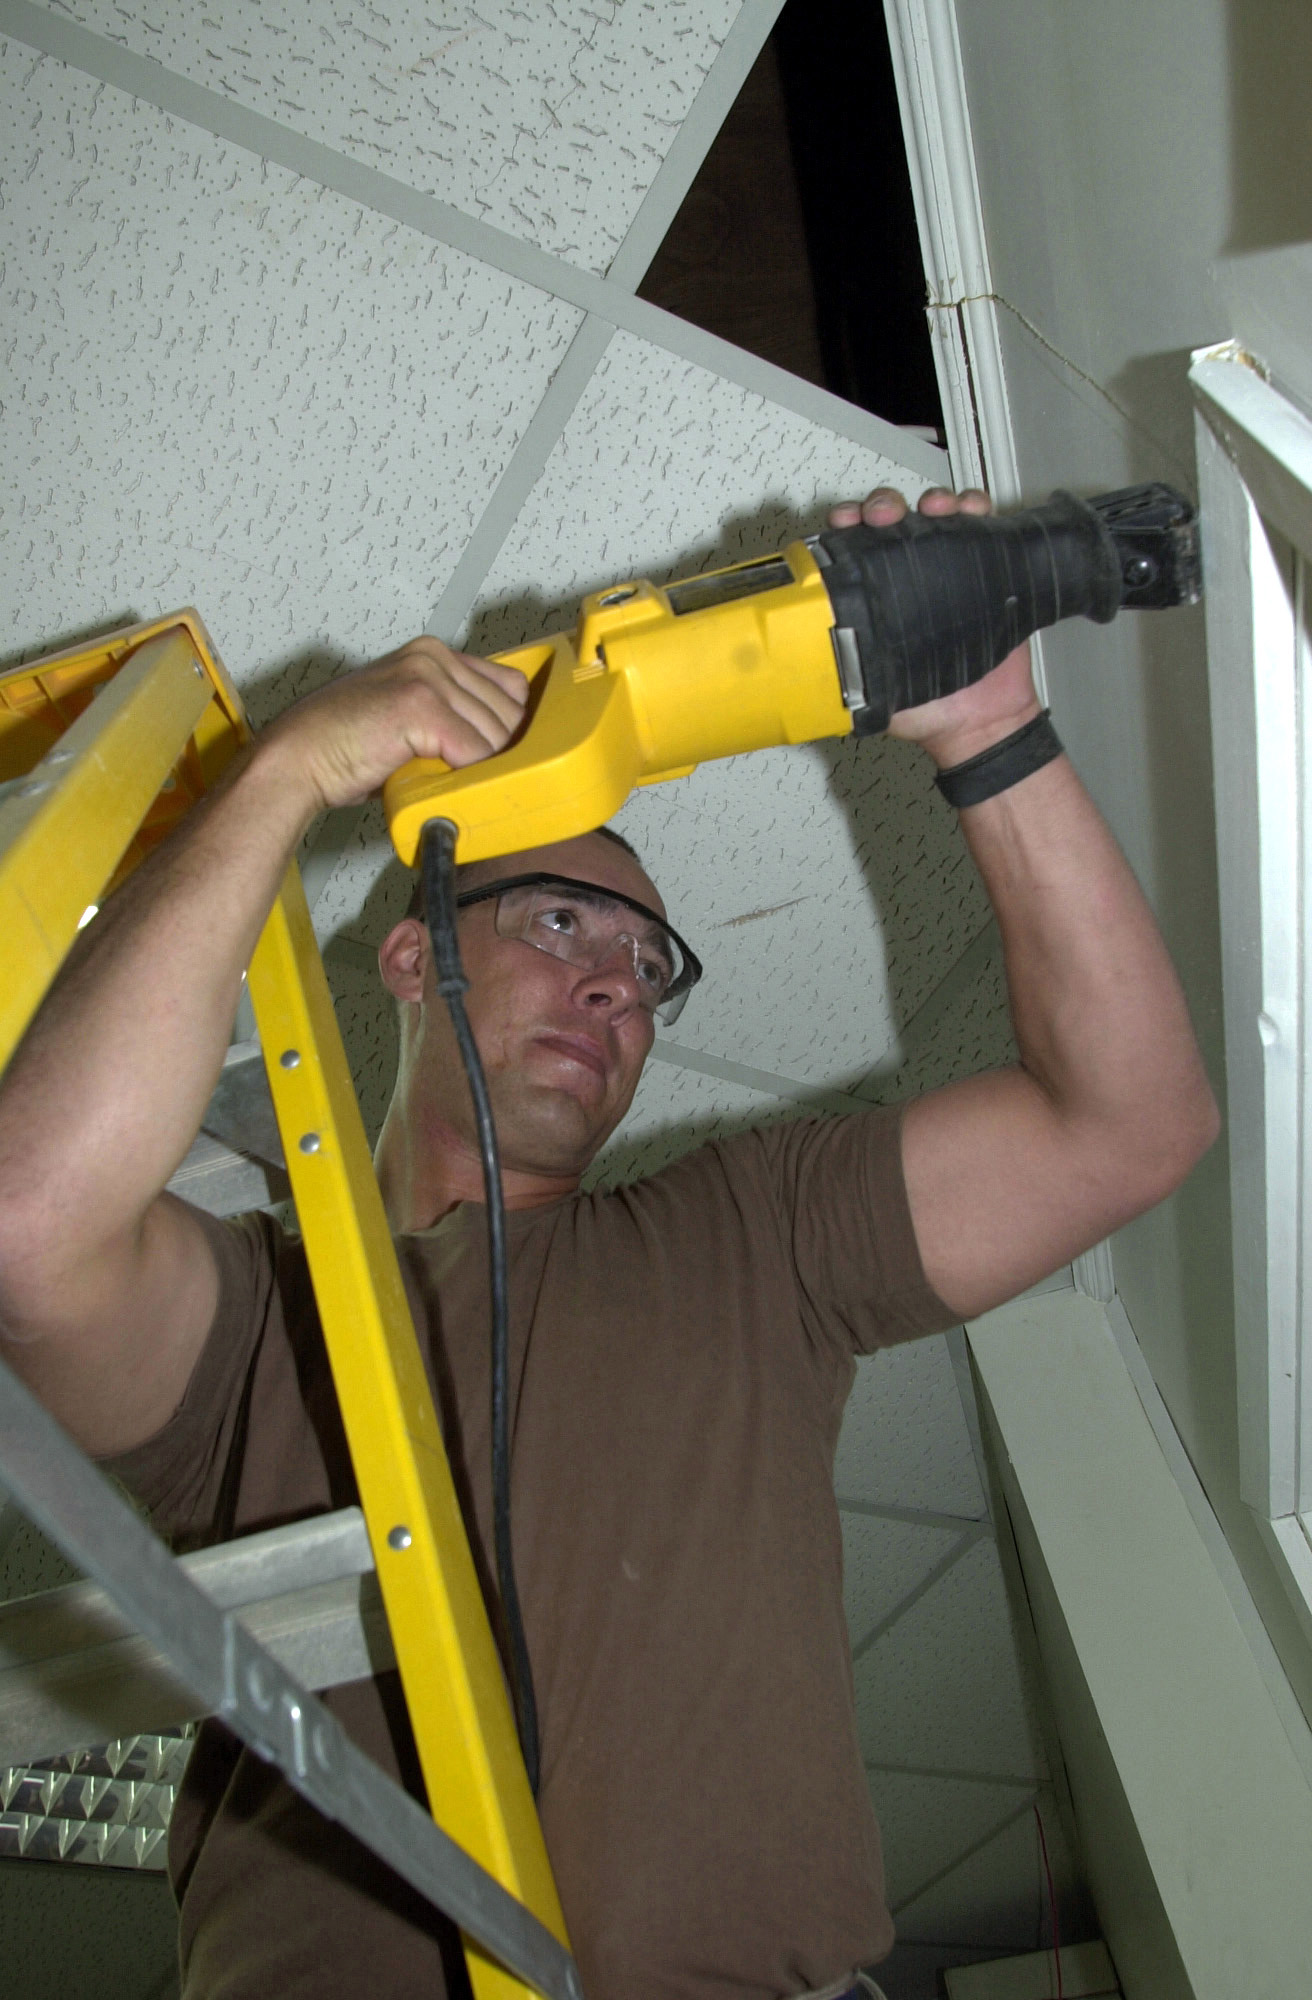 STAFF Sergeant (SSGT) Edward W. Davenport, an Air National Guard (ANG) member from Meridian, Mississippi, uses a jigsaw to cut through drywall at a renovated post office